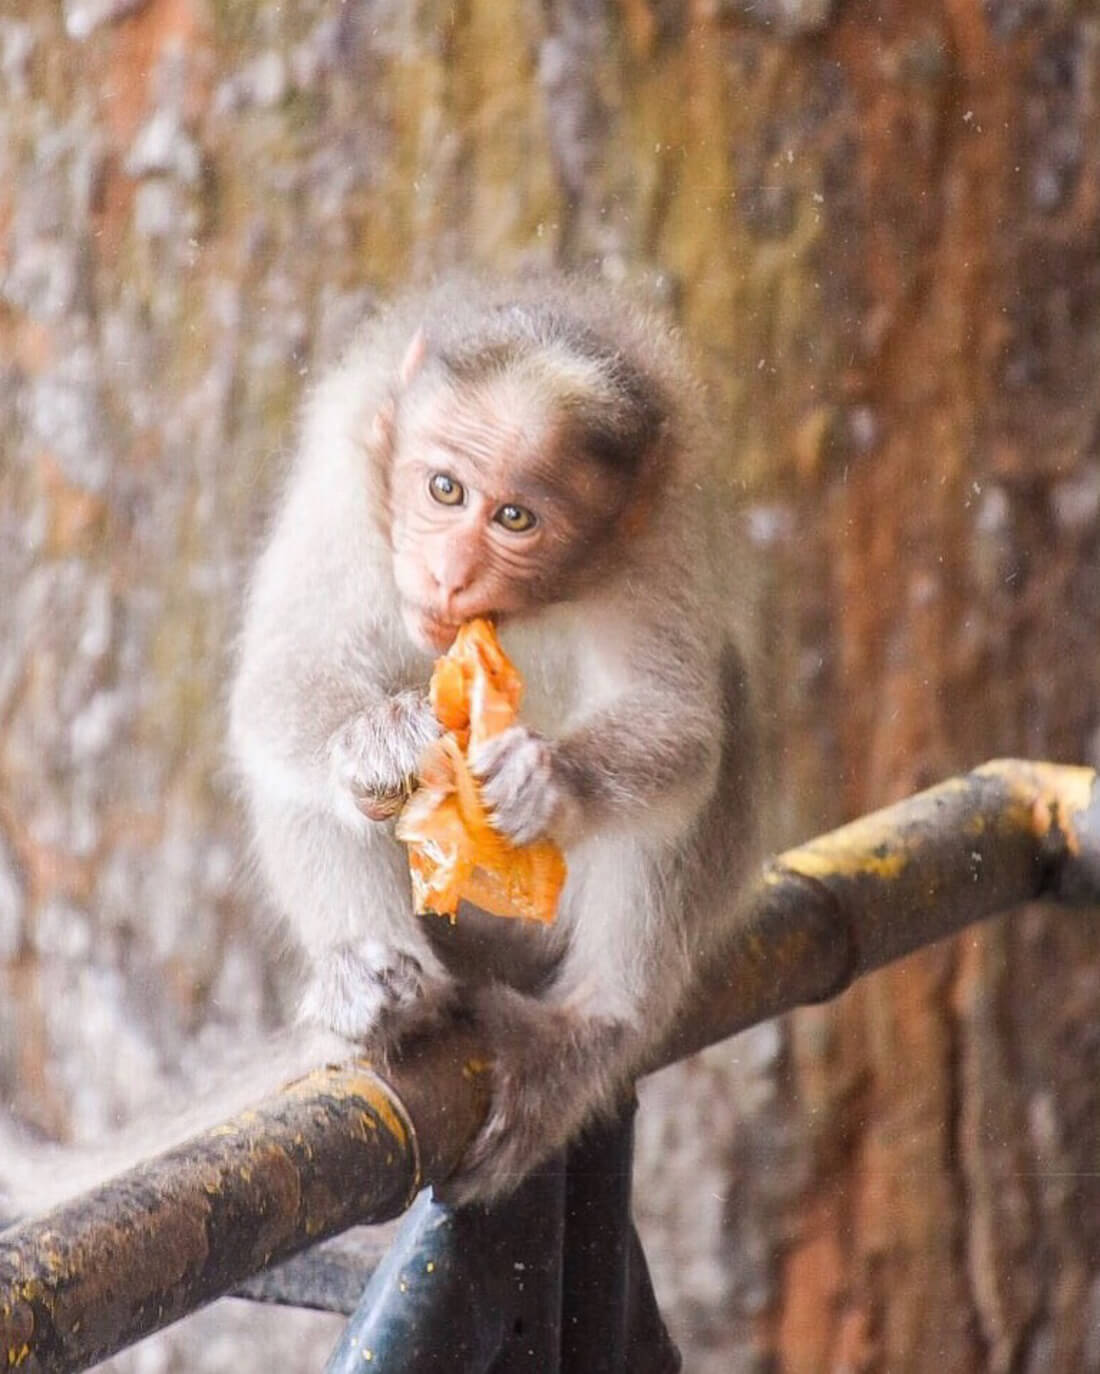 Monkey eating an orange plastic bag in India